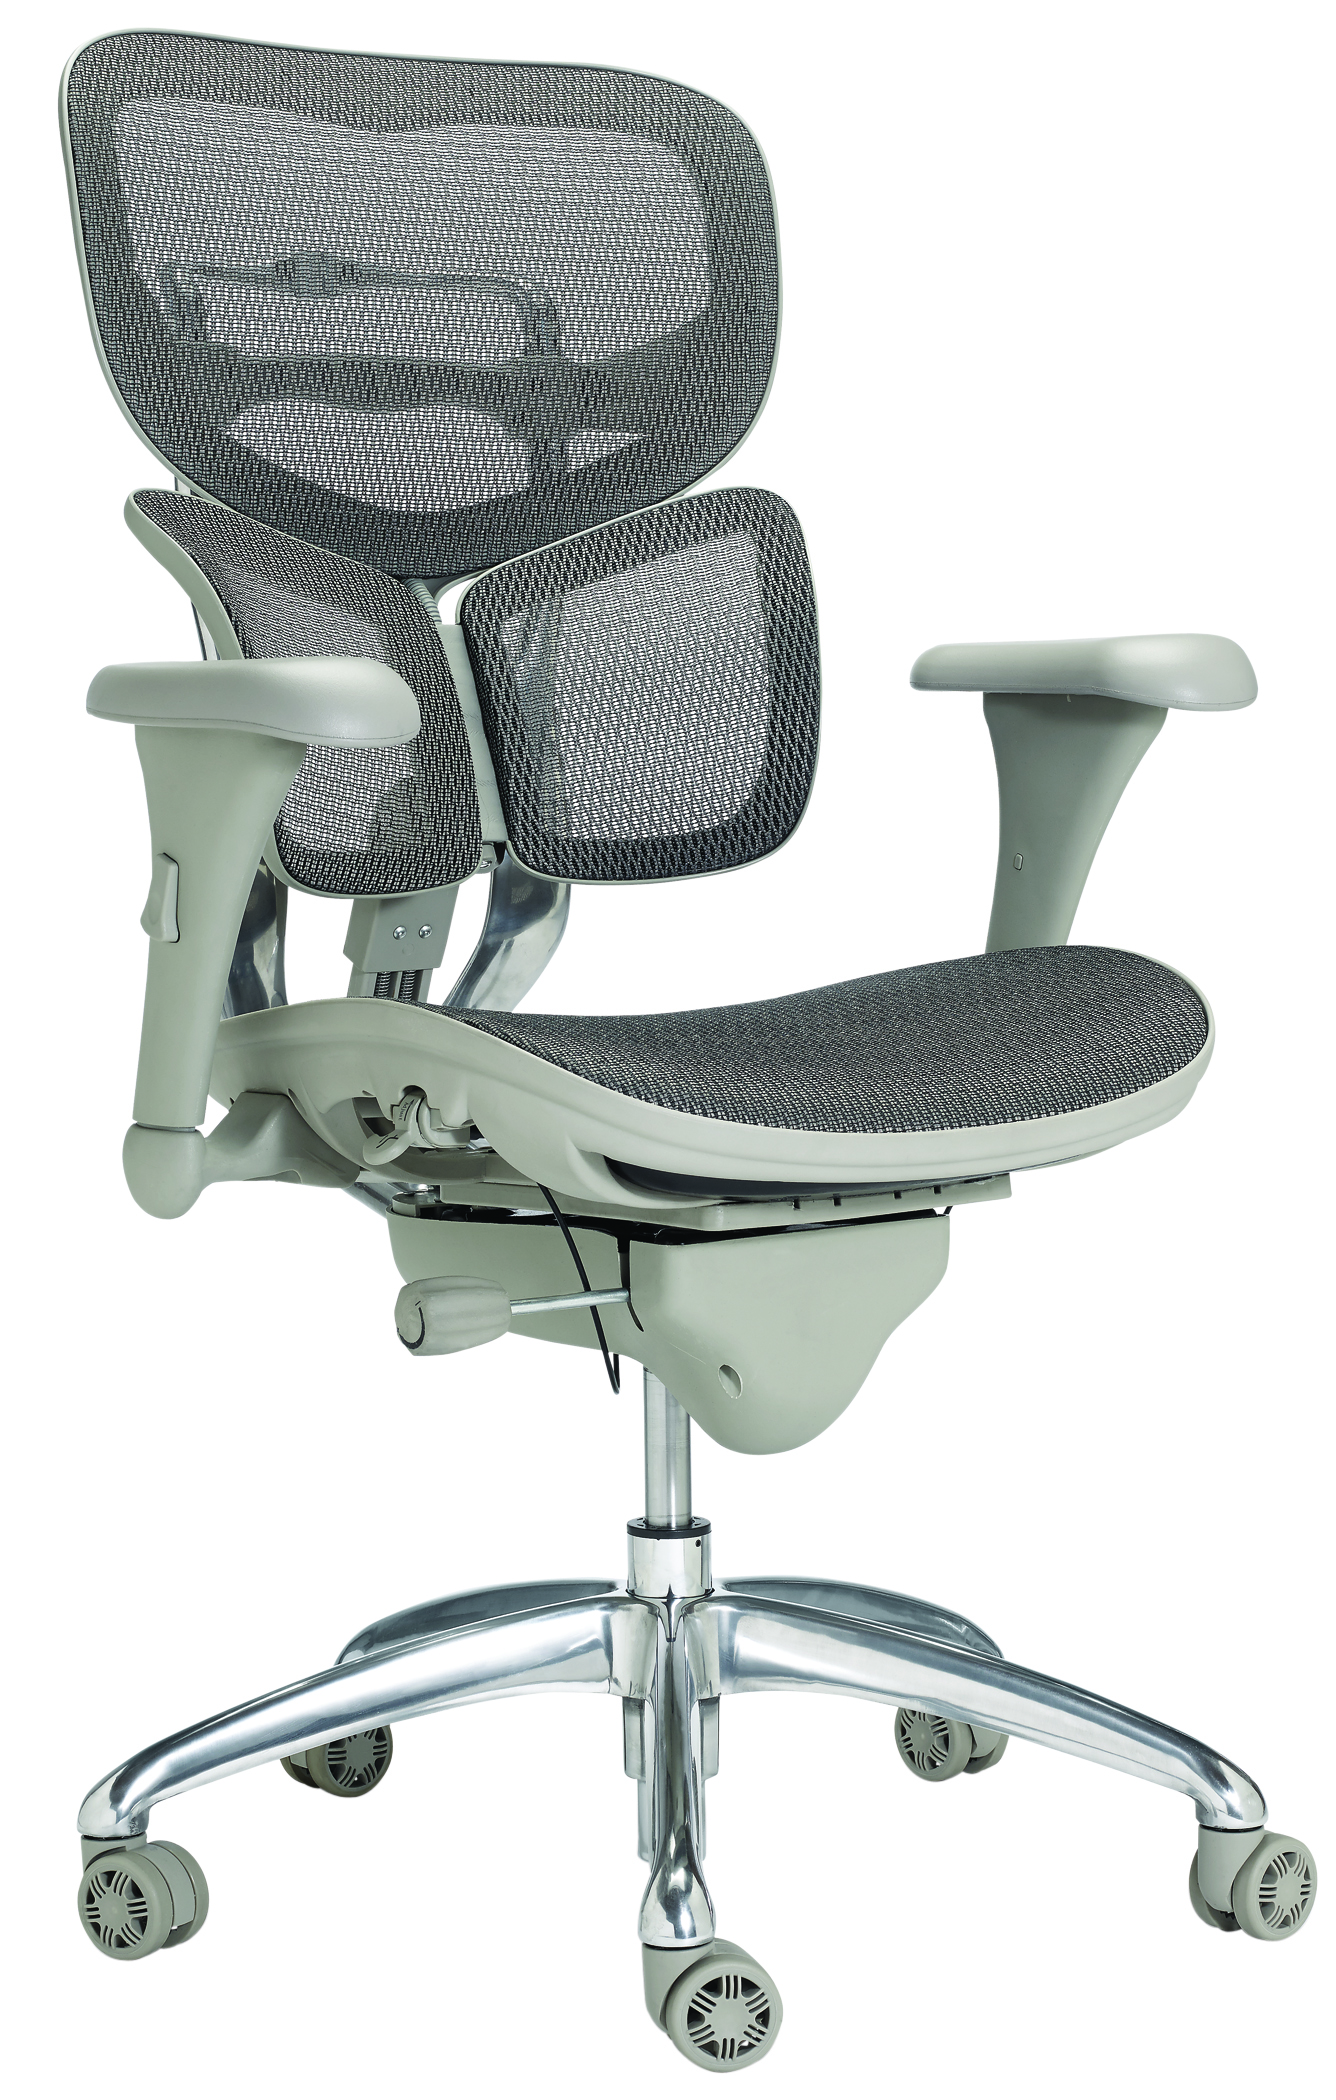 WorkPro® PRO-767E Commercial Mesh Mid-Back Chair, Gray